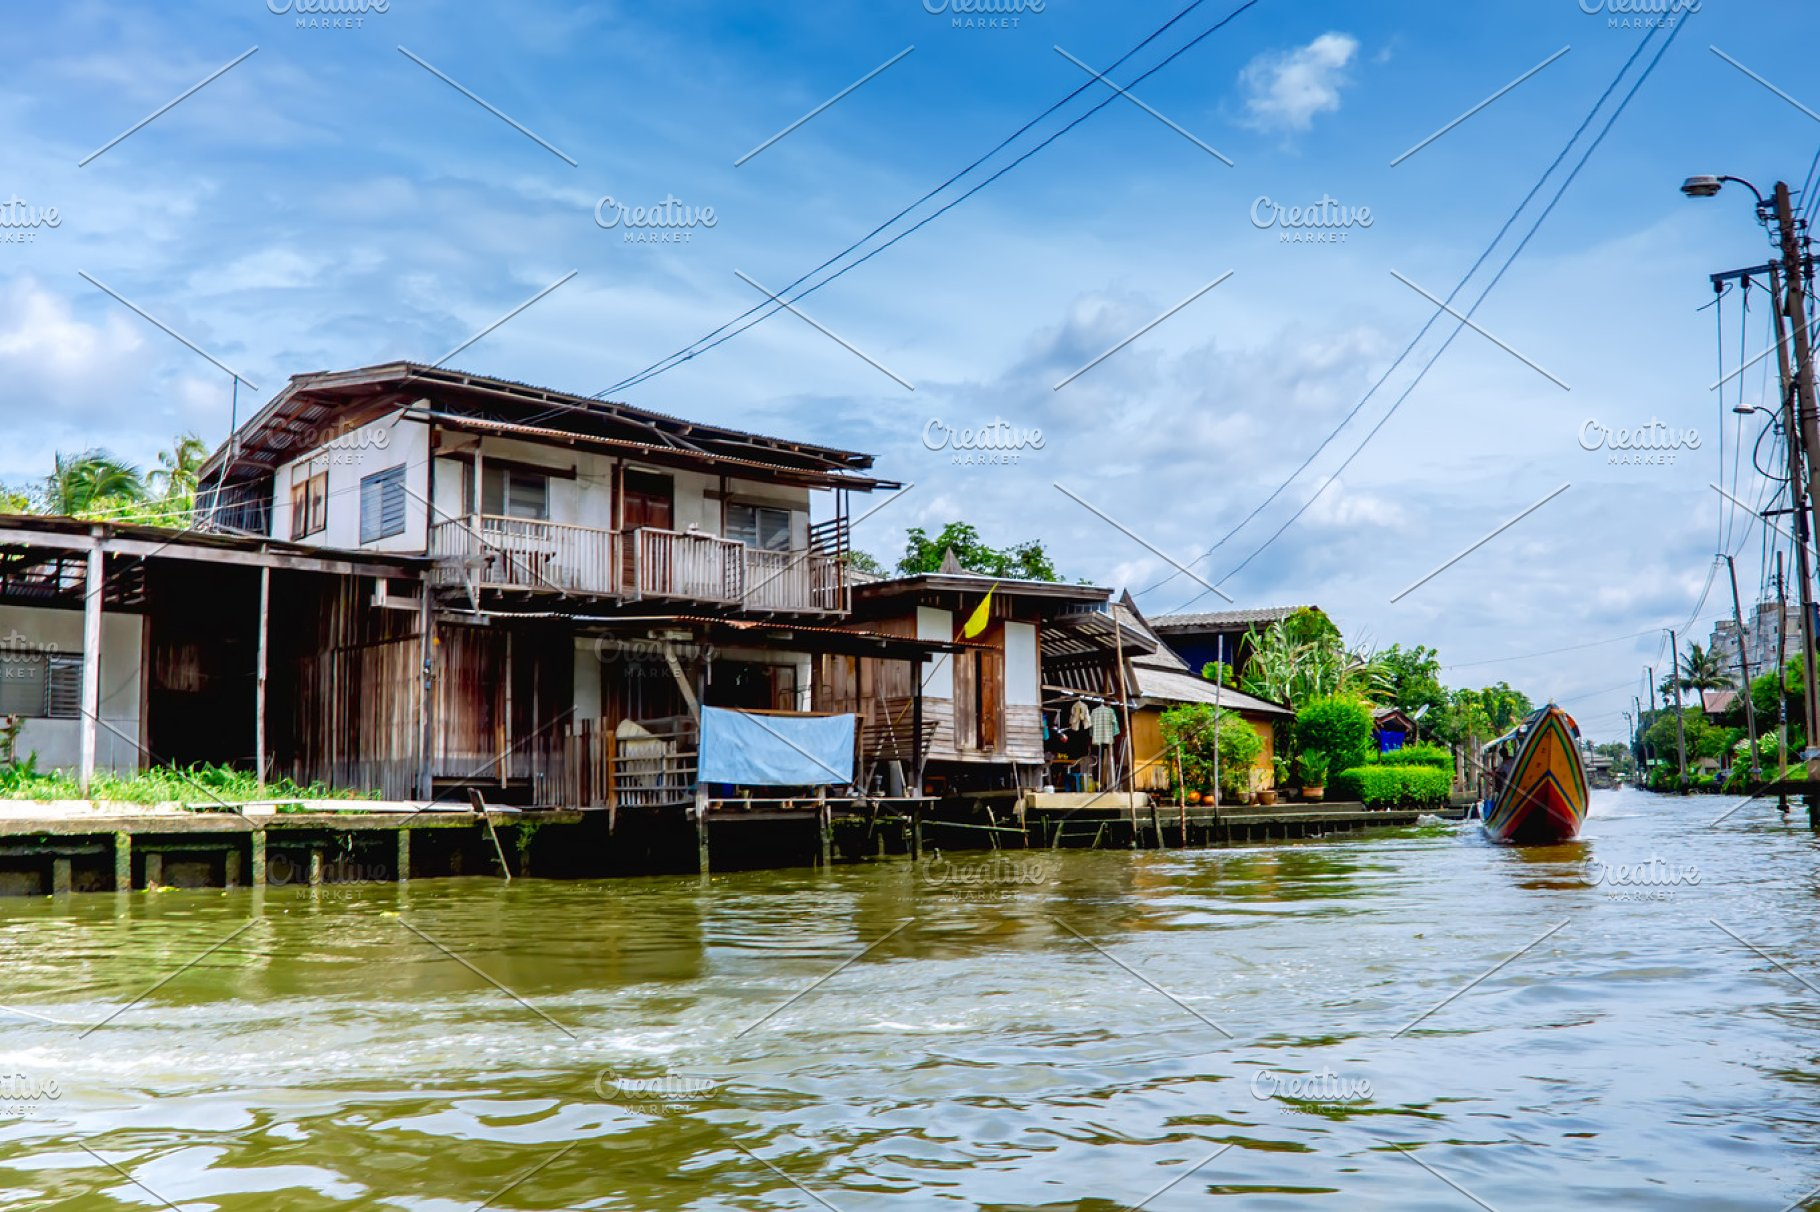 Save wooden houses on stilts